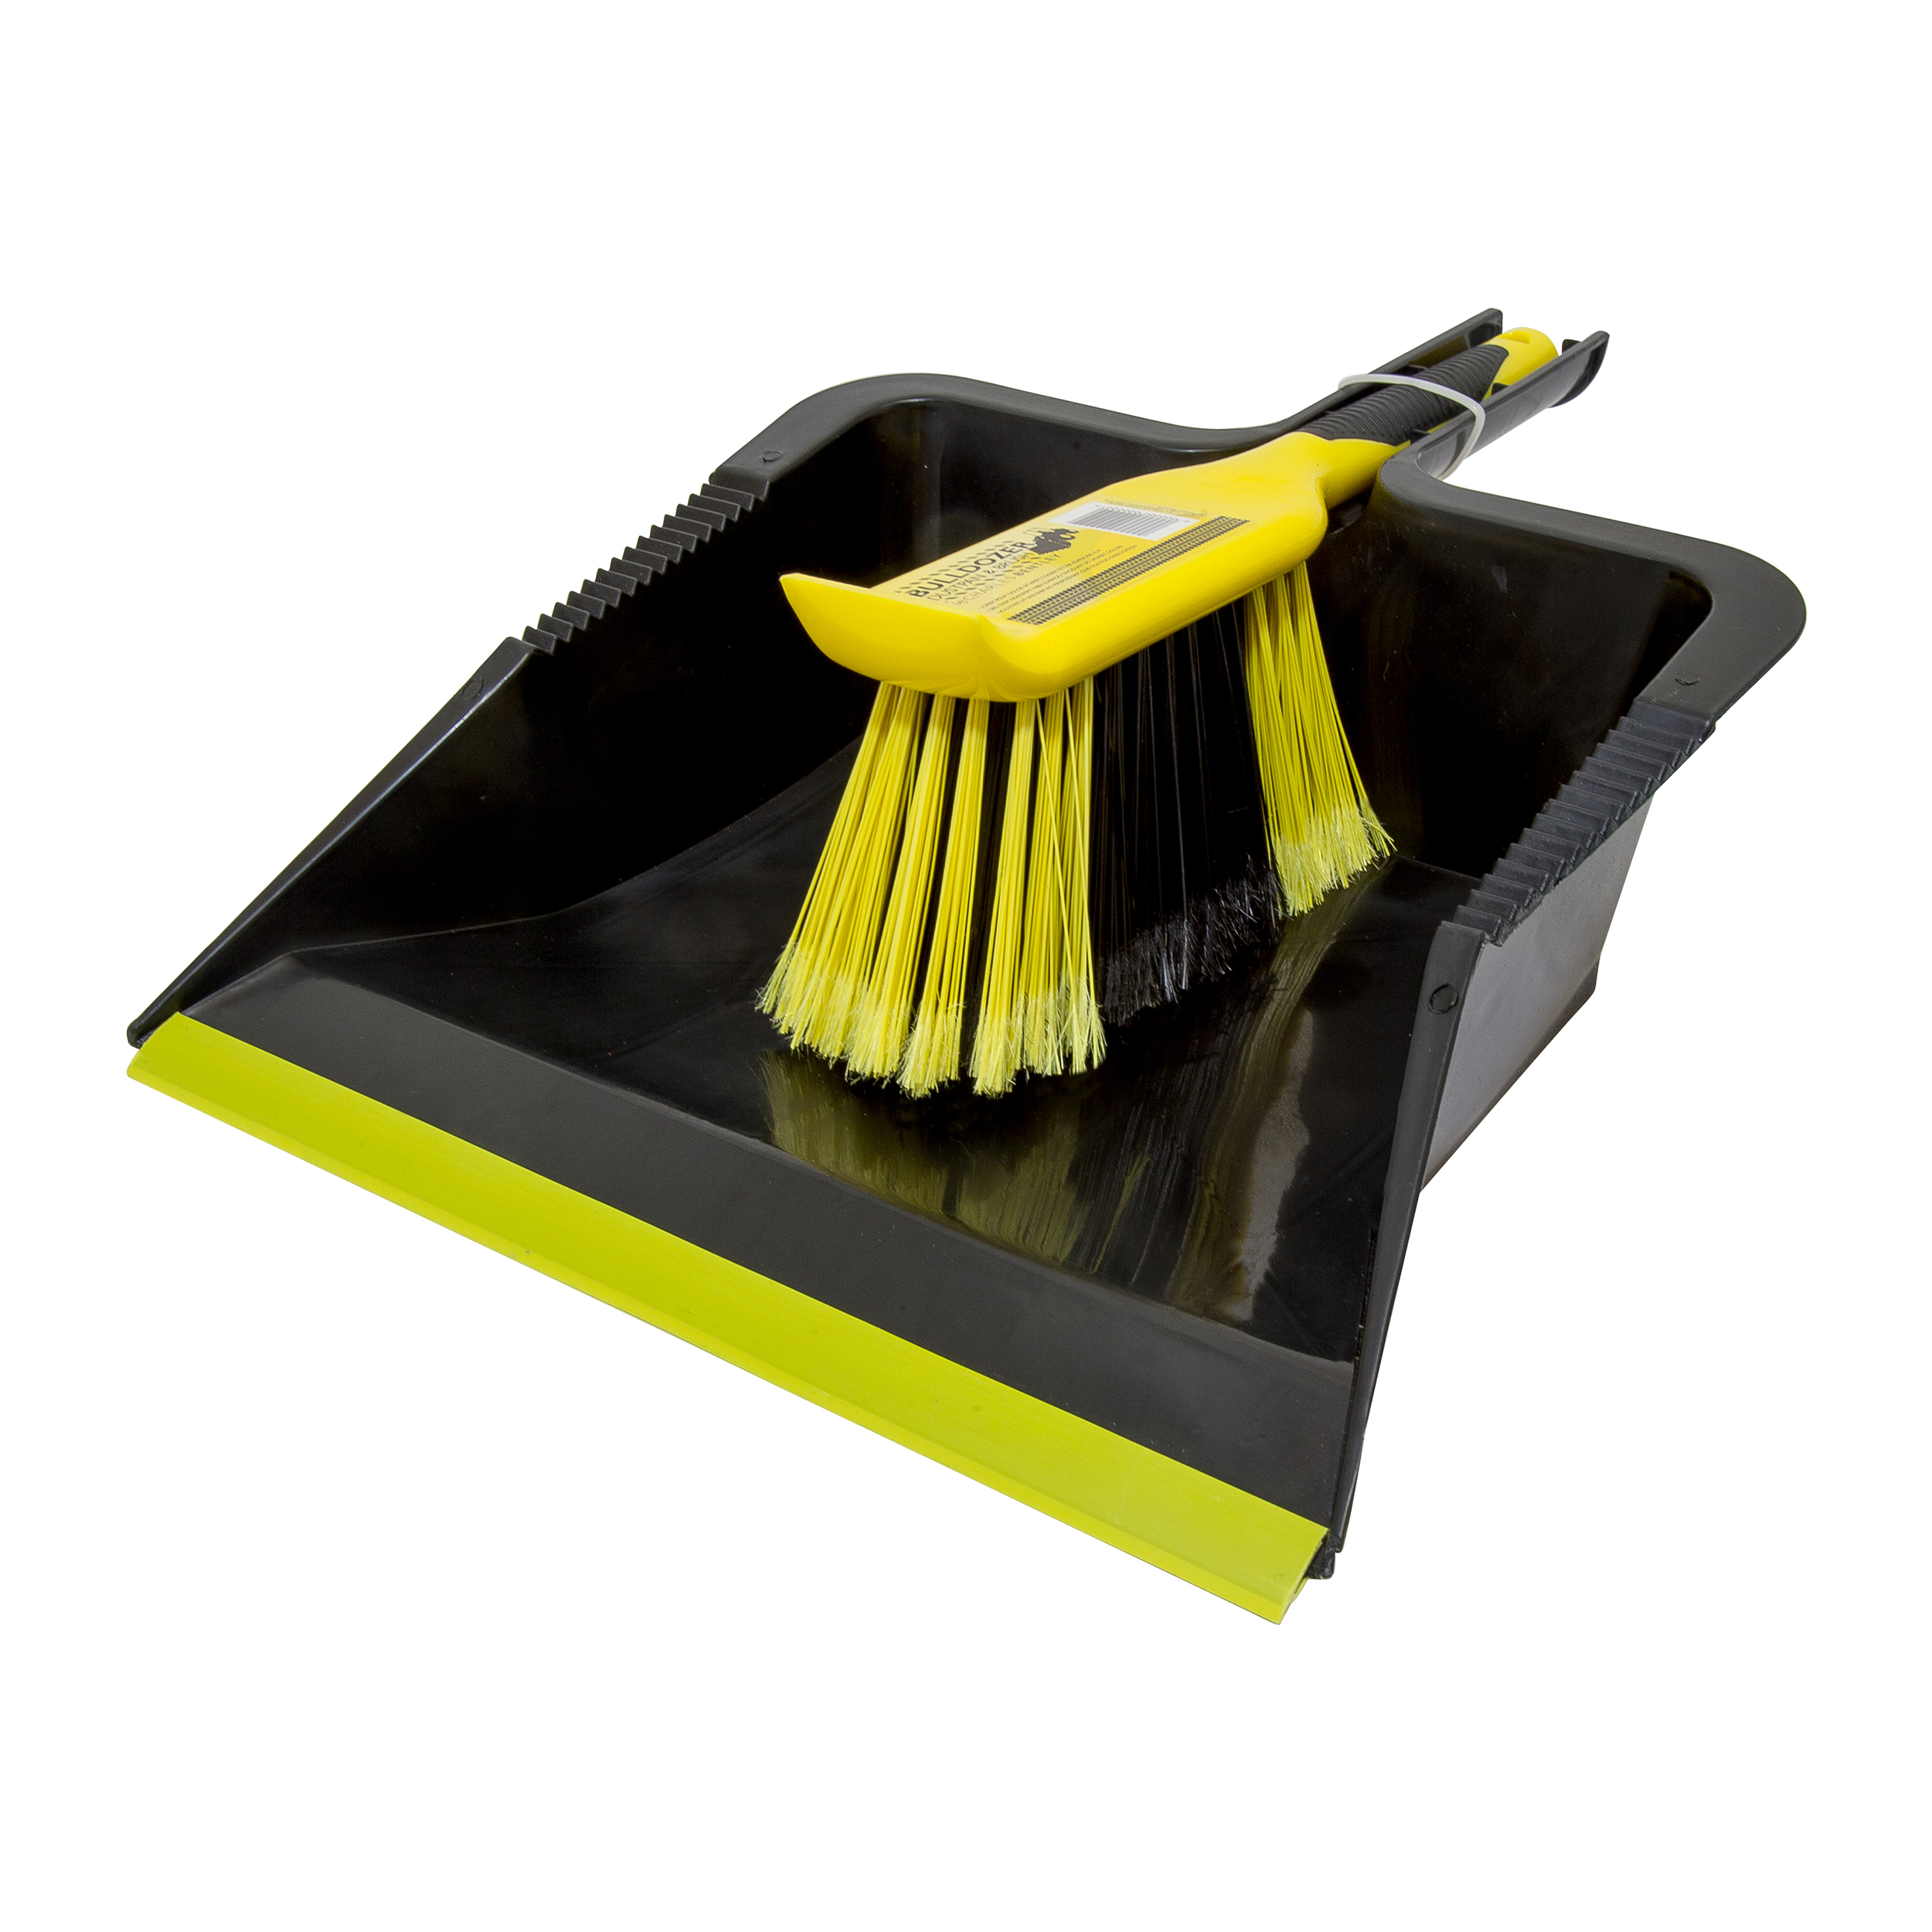 Janitorial Bentley Bulldozer Dustpan & Brush Set Ref 518014